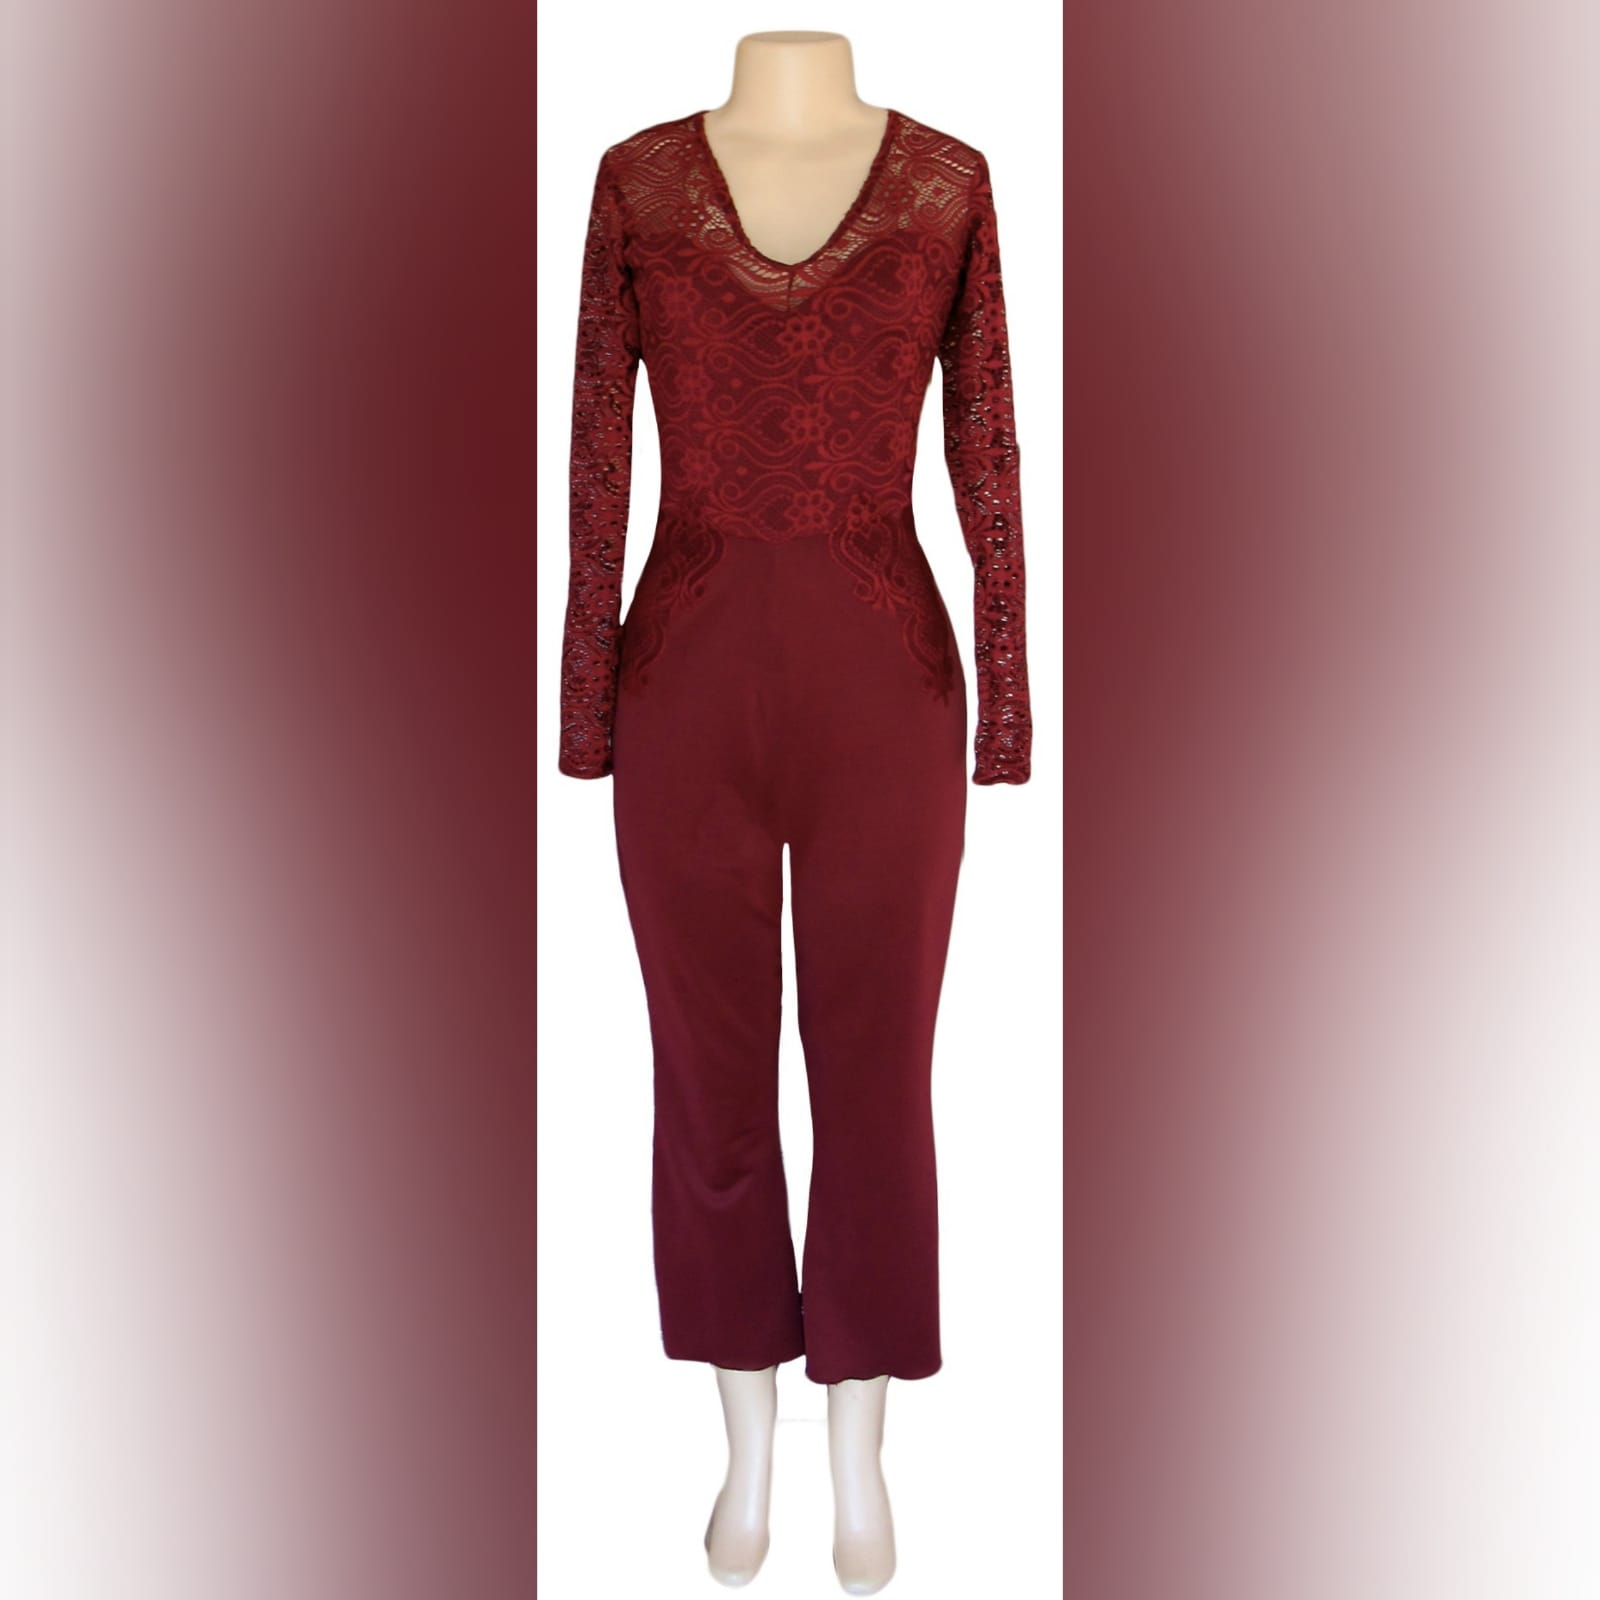 Maroon long leg evening wear bodysuit 4 maroon long leg evening wear bodysuit with a lace bodice and lace detail on the hips. With long lace sleeves.